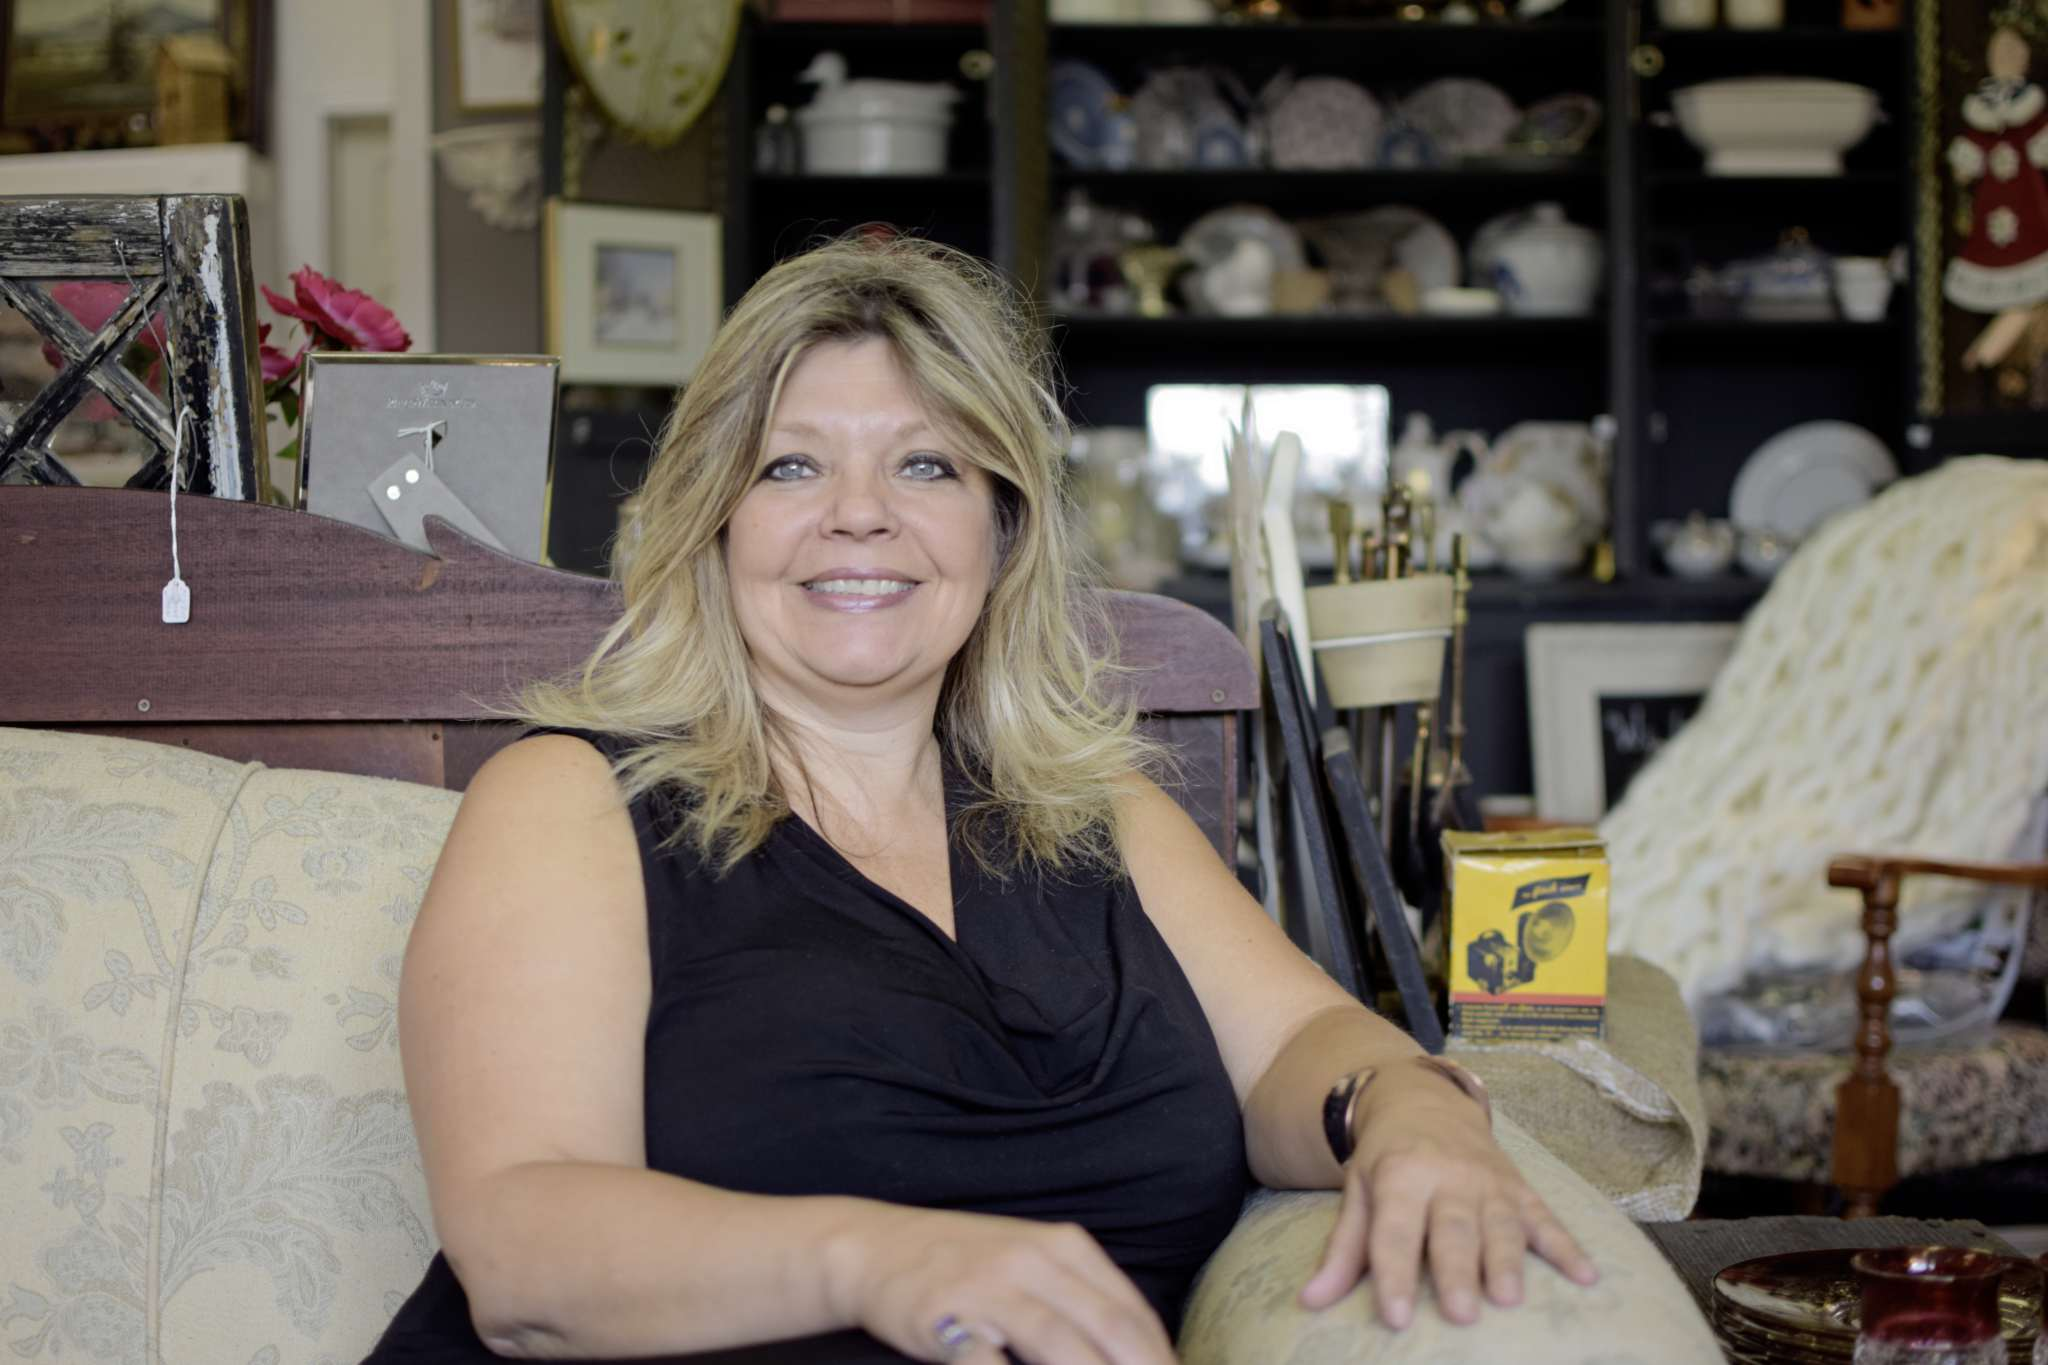 Green Mosquito Interiors Owner Raegan Quantrell In The Vintage Home Decor Store At 2175 Portage Ave